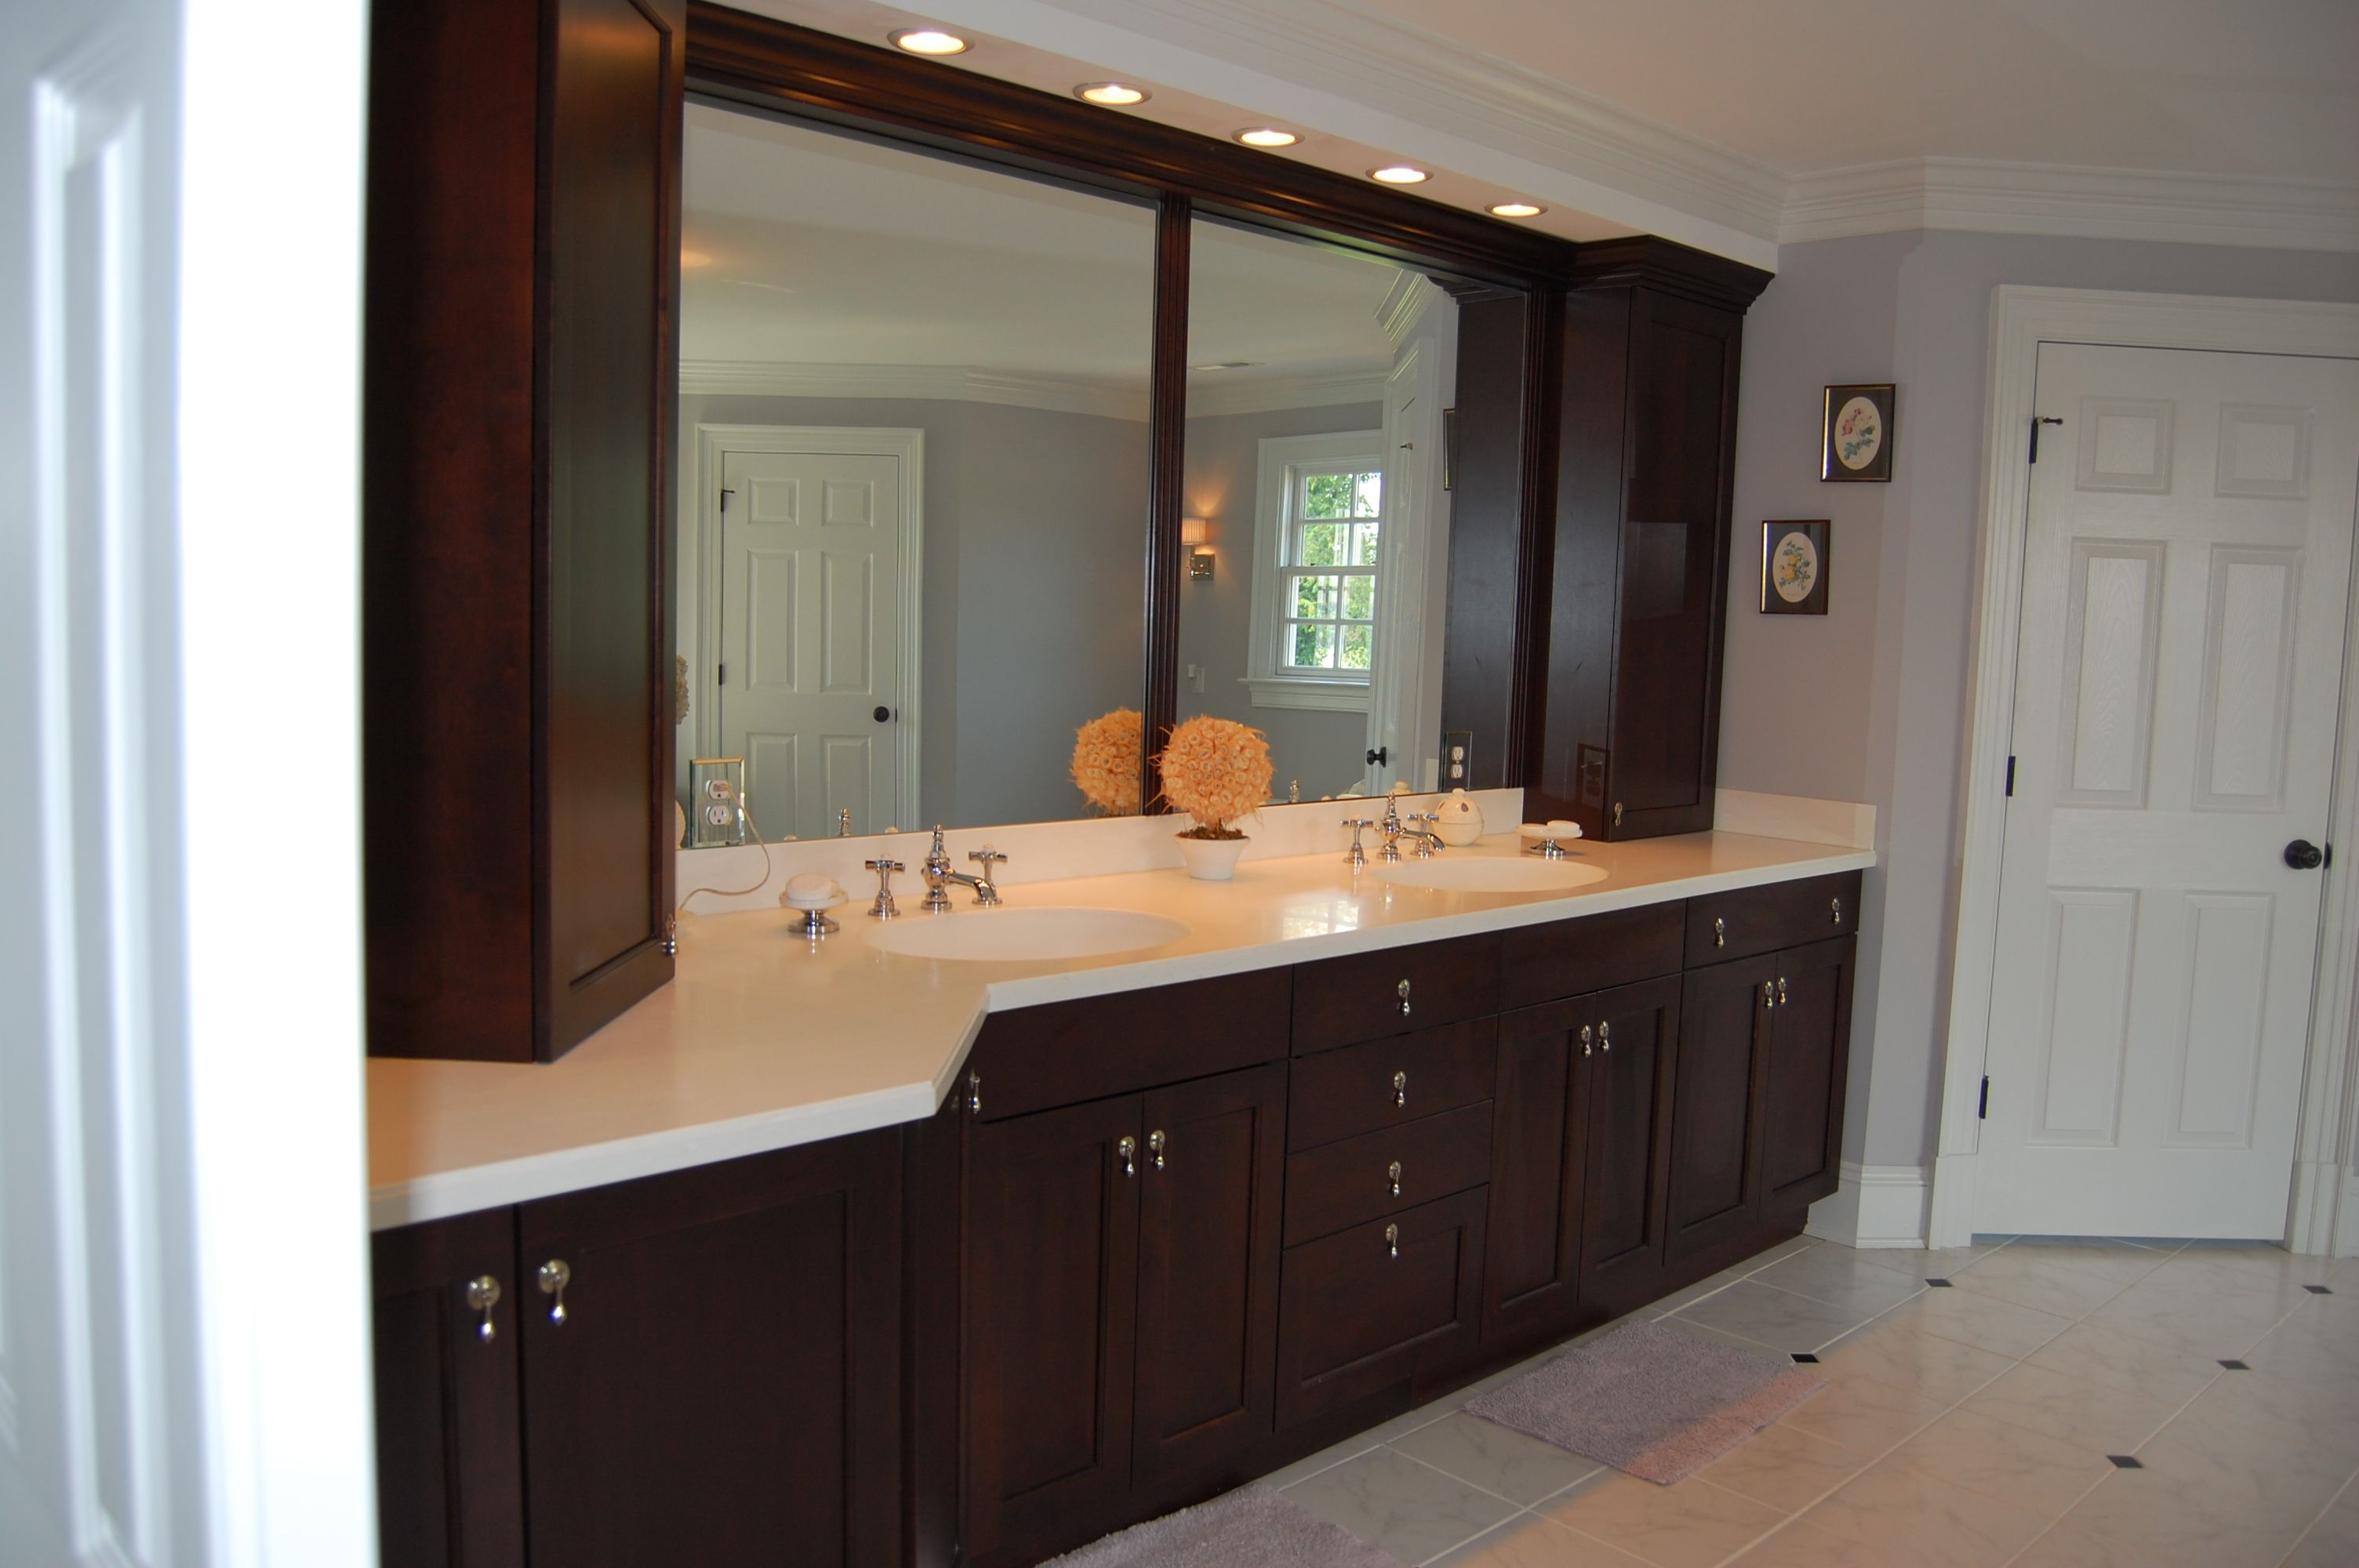 San Diego Bathroom Remodeling  Bathroom Remodel  Pinterest Best Bathroom Remodeling Richmond Va Design Inspiration